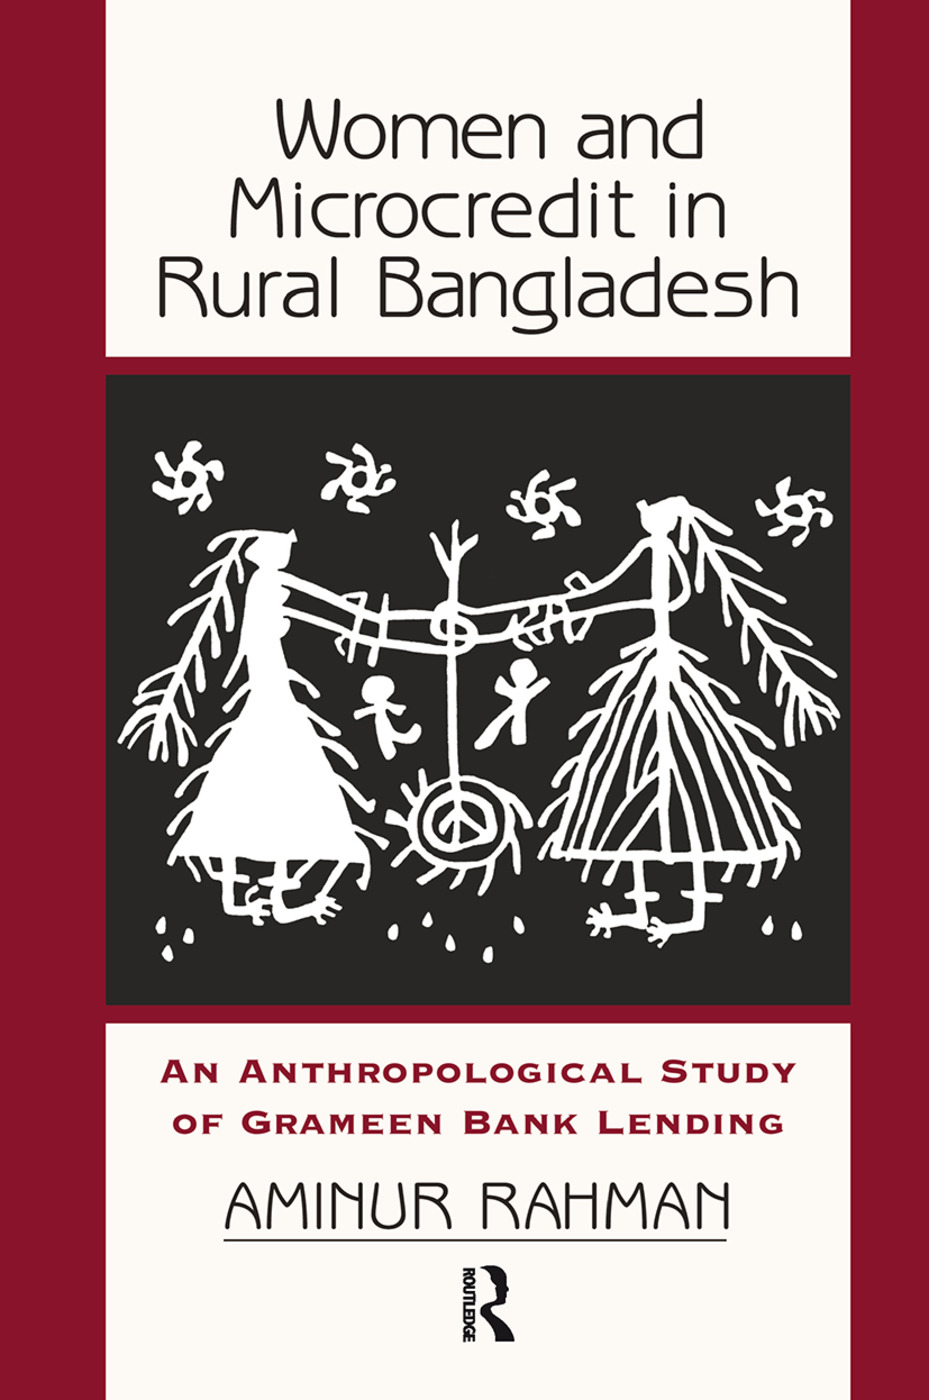 Women And Microcredit In Rural Bangladesh: An Anthropological Study Of Grameen Bank Lending, 1st Edition (Hardback) book cover